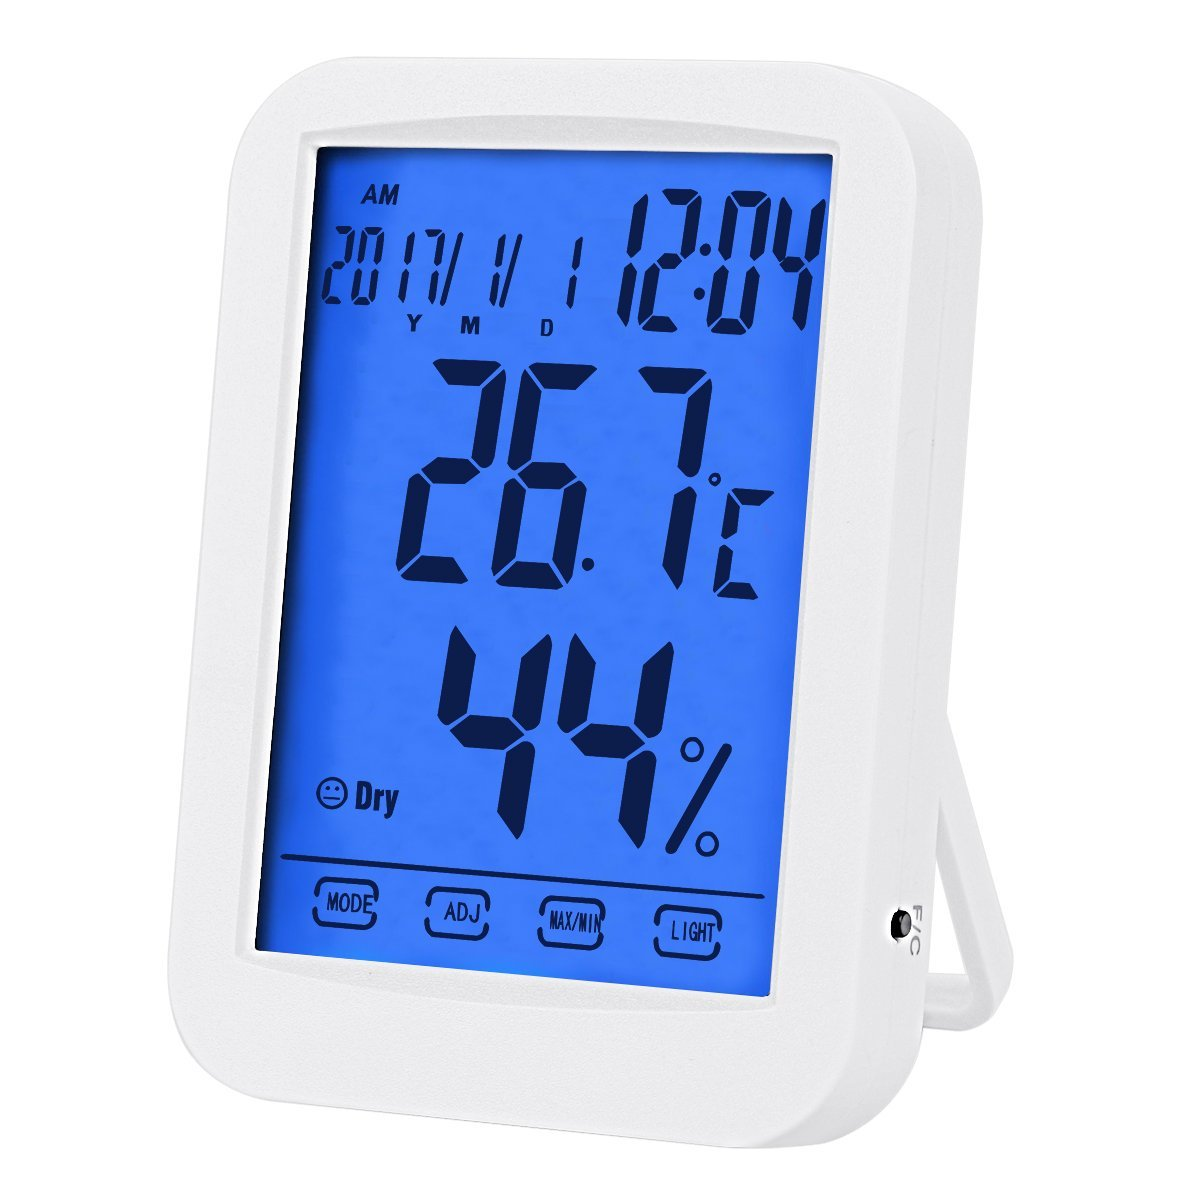 Loskii DC-07 Digital Temperature Hygrometer Alarm Clock Weather Forecast Trends Calendar Function Alarm Clock